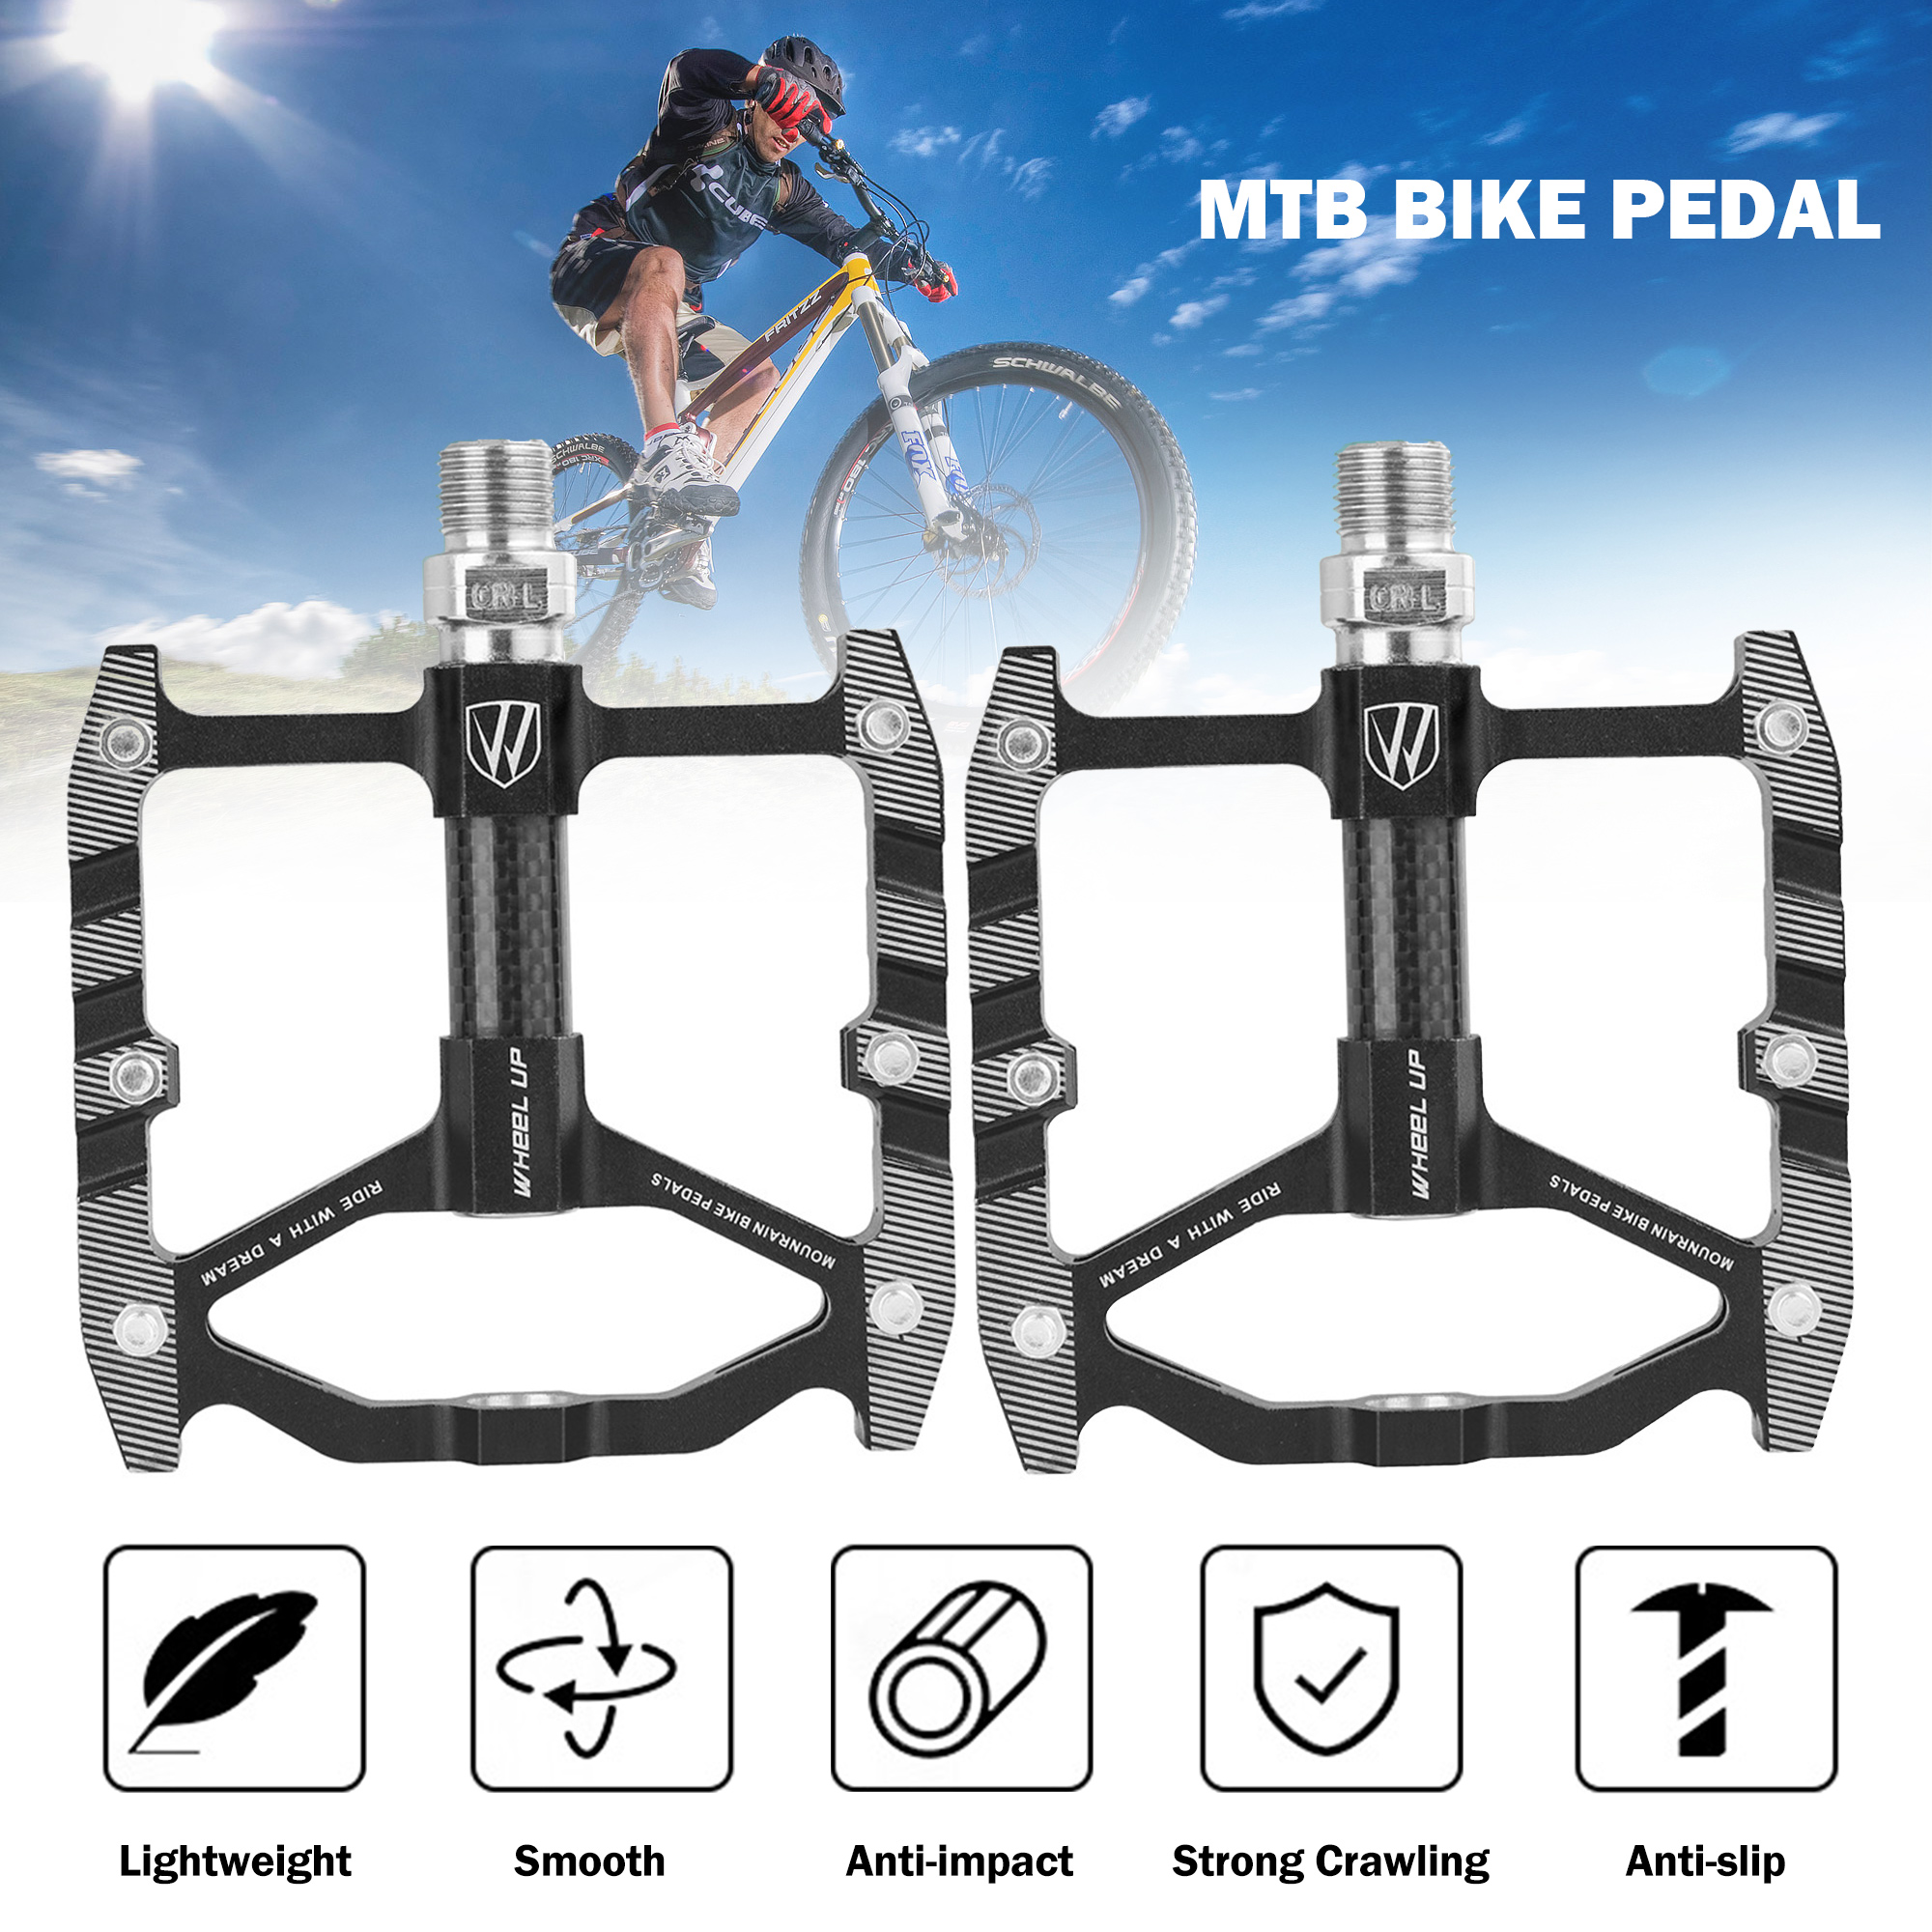 Outdoor Mountain Parts Bicycle Sealed MTB Bearing Colors Pedals CNC 6 BIKEIN